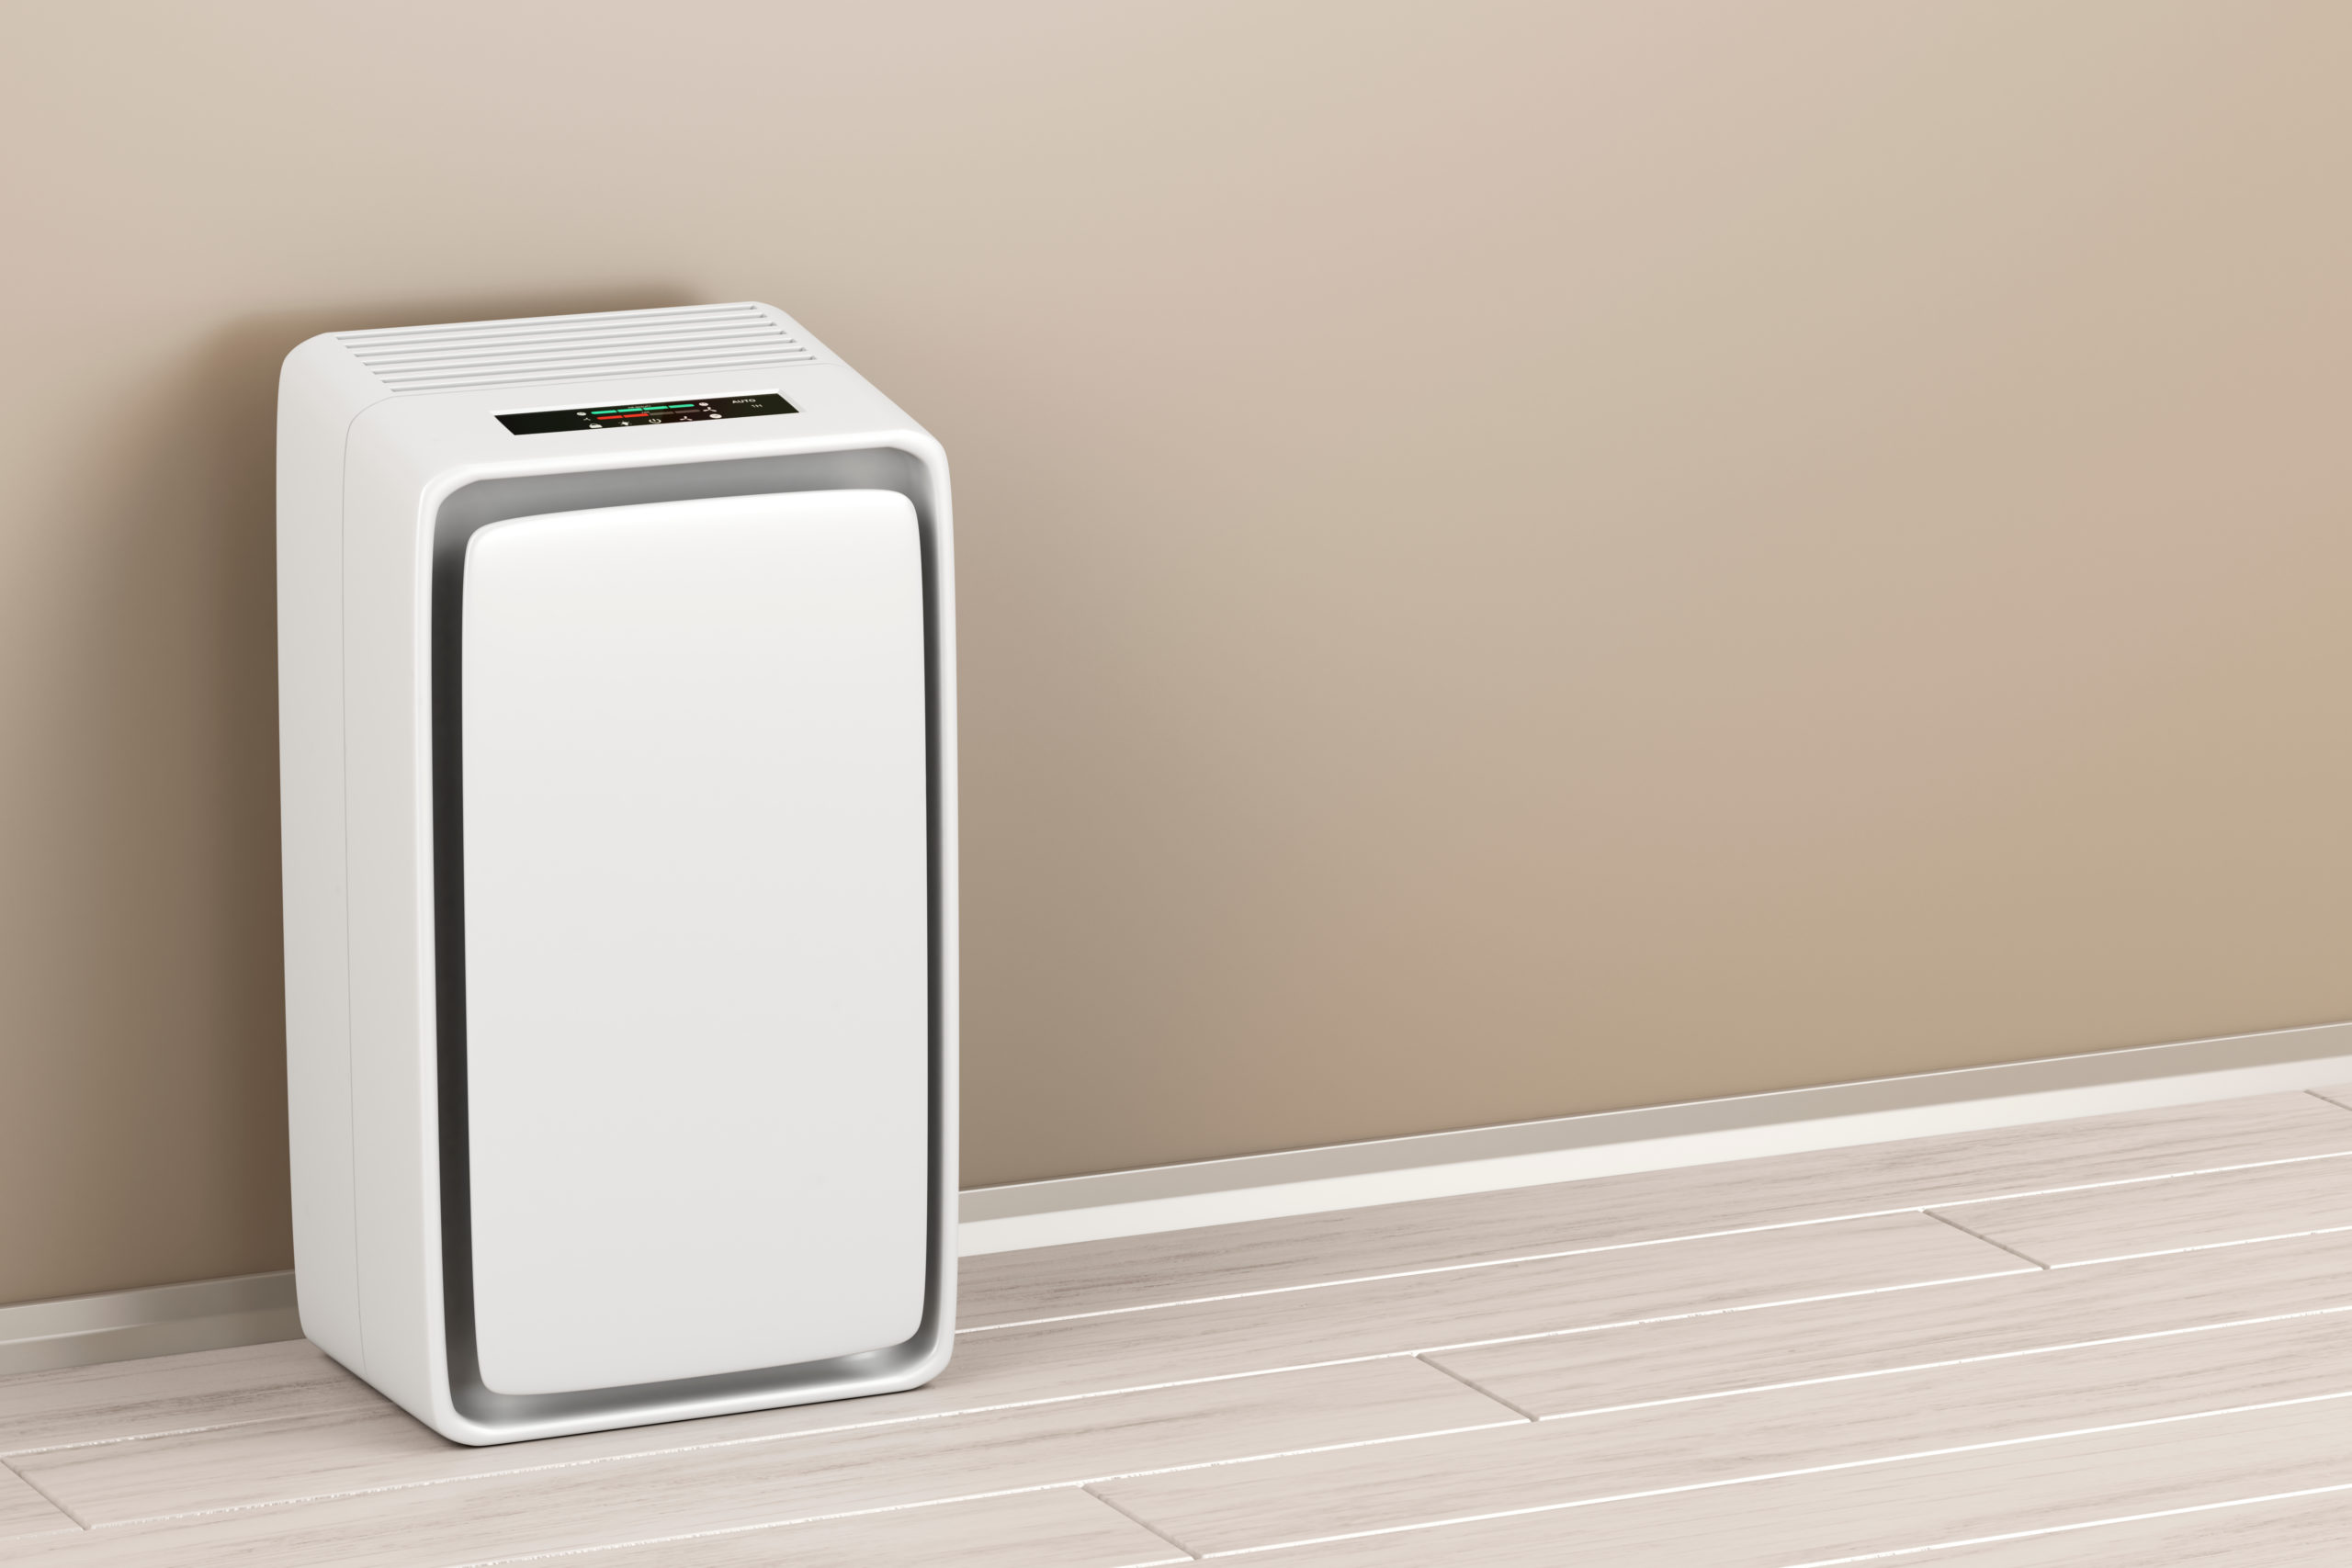 Air Purifier Picture for Application Page